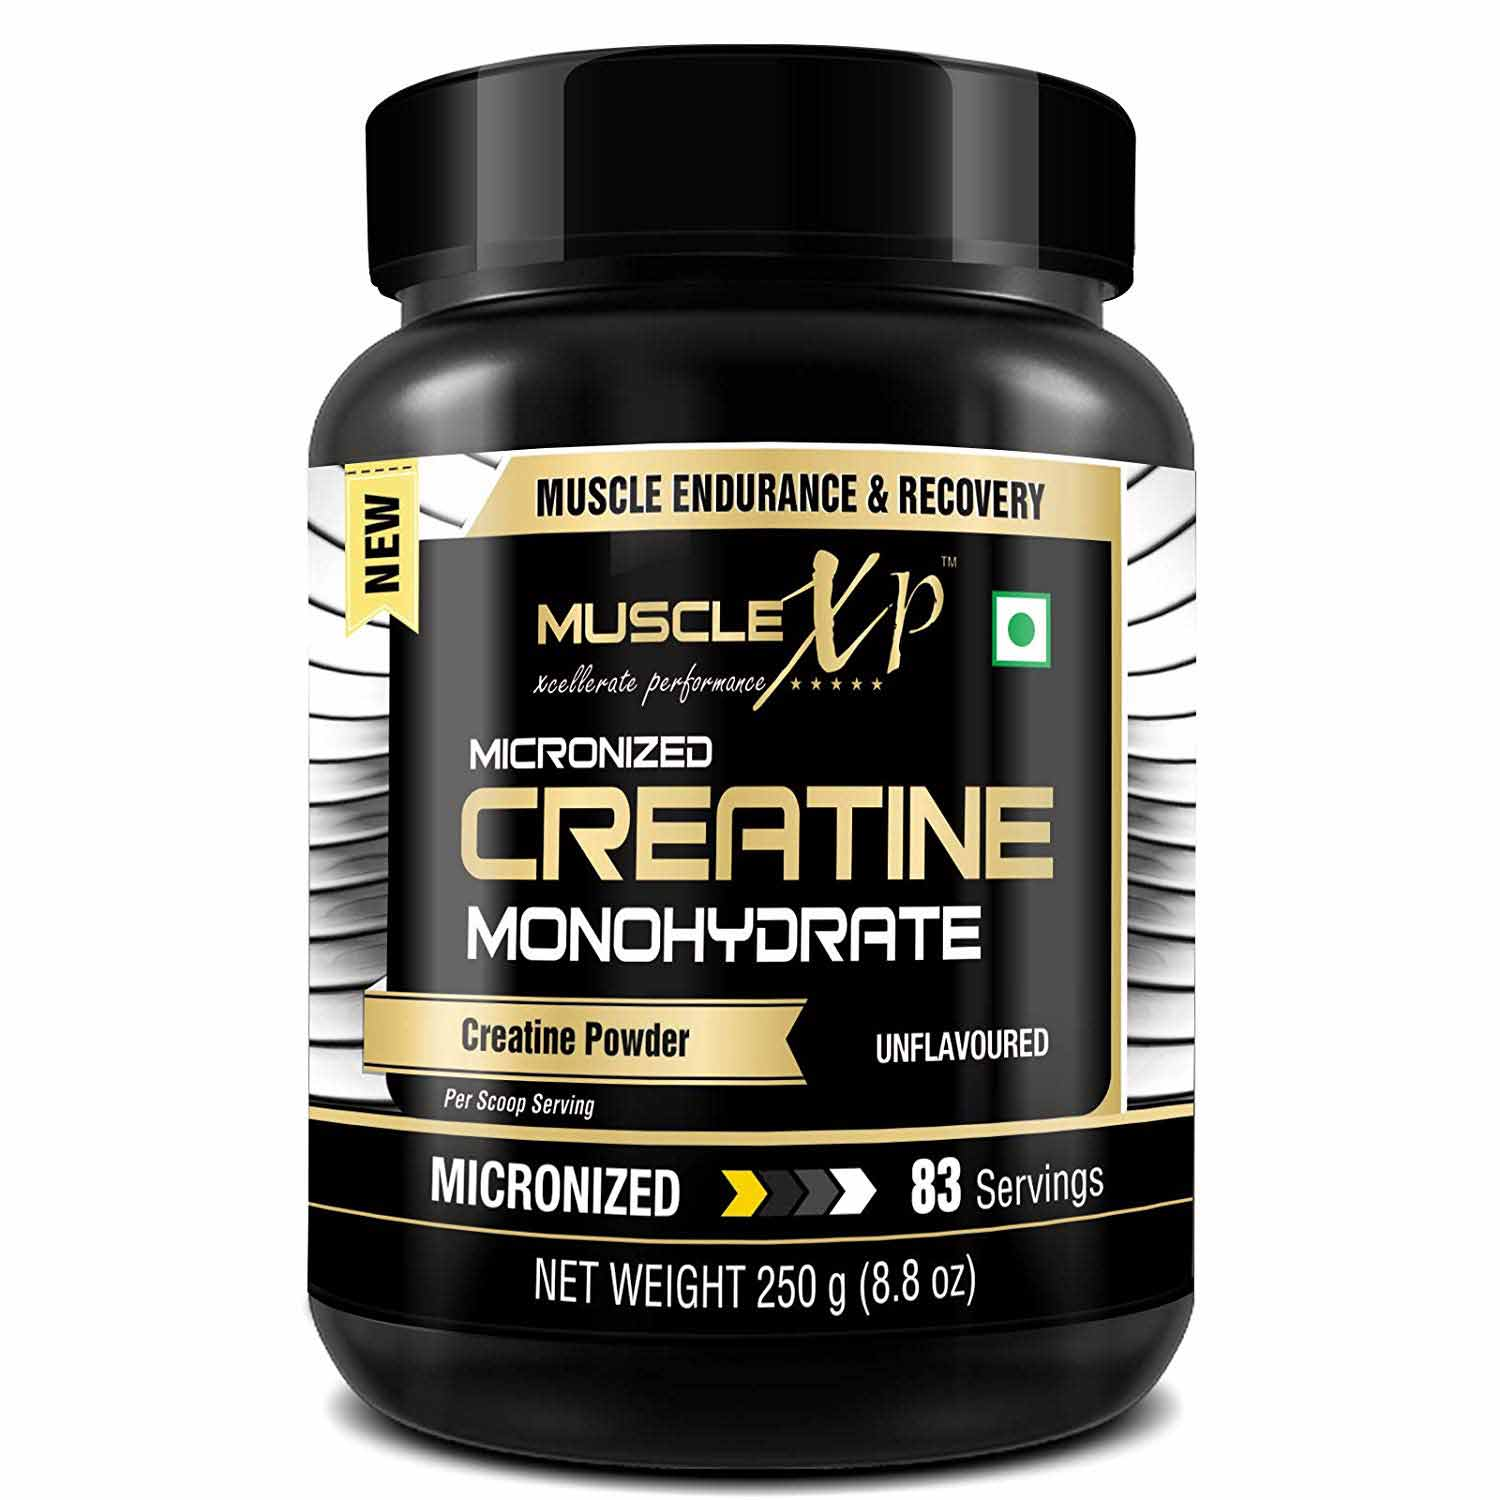 MuscleXP-Micronized-Creatine-Monohydrate-250g-Unflavoured-1